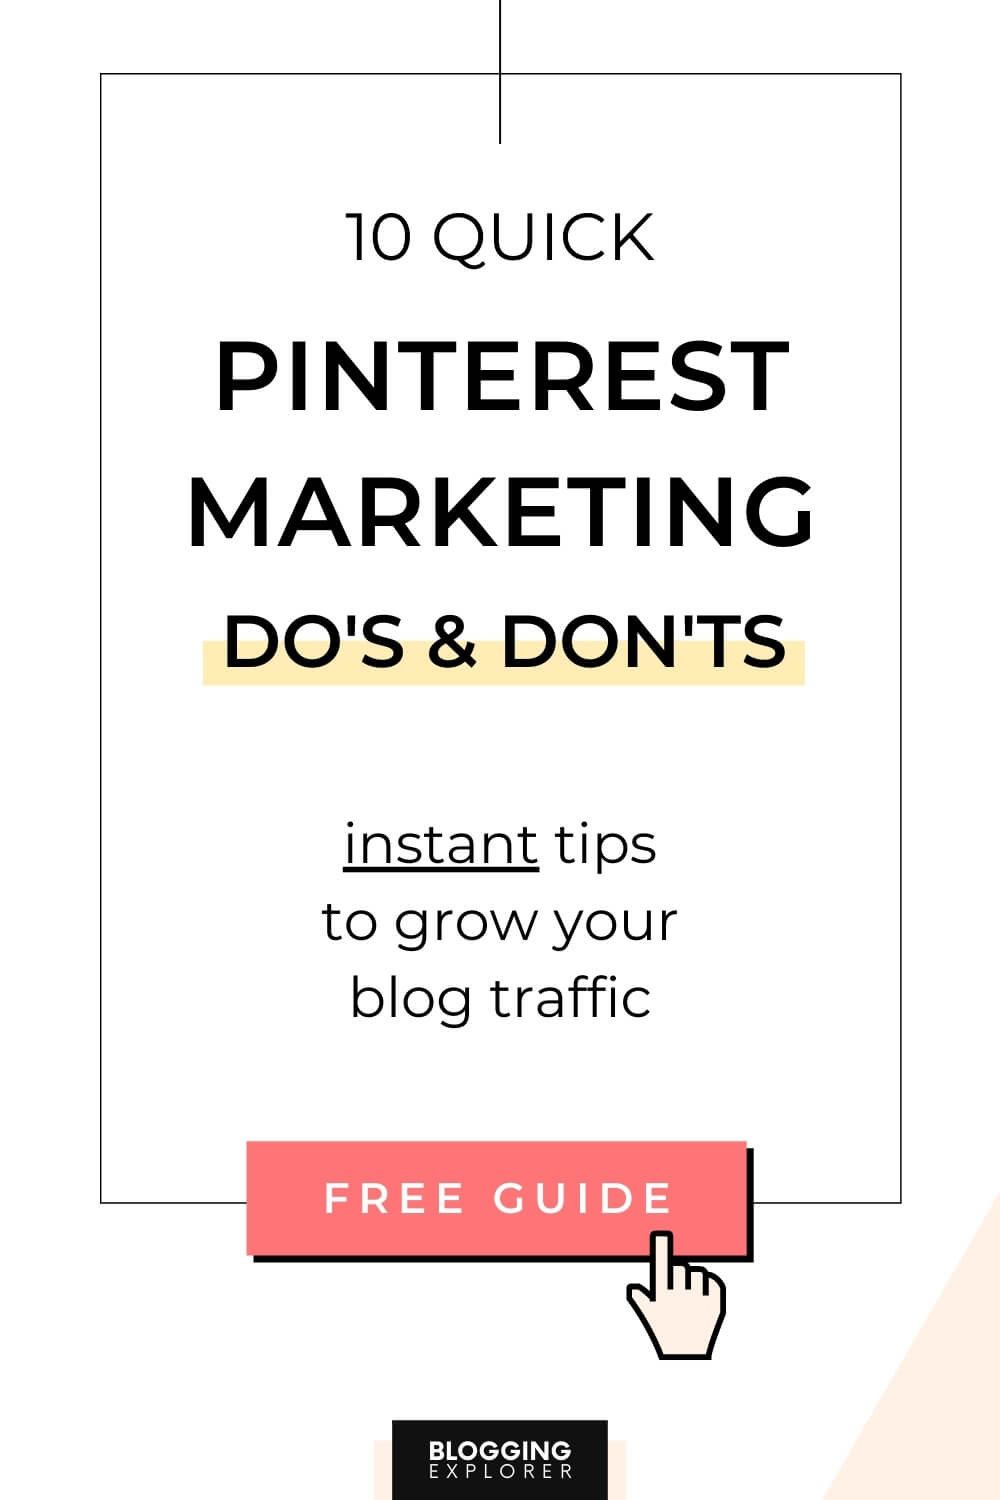 Pinterest marketing strategy dos and donts - How to grow blog traffic with Pinterest for free